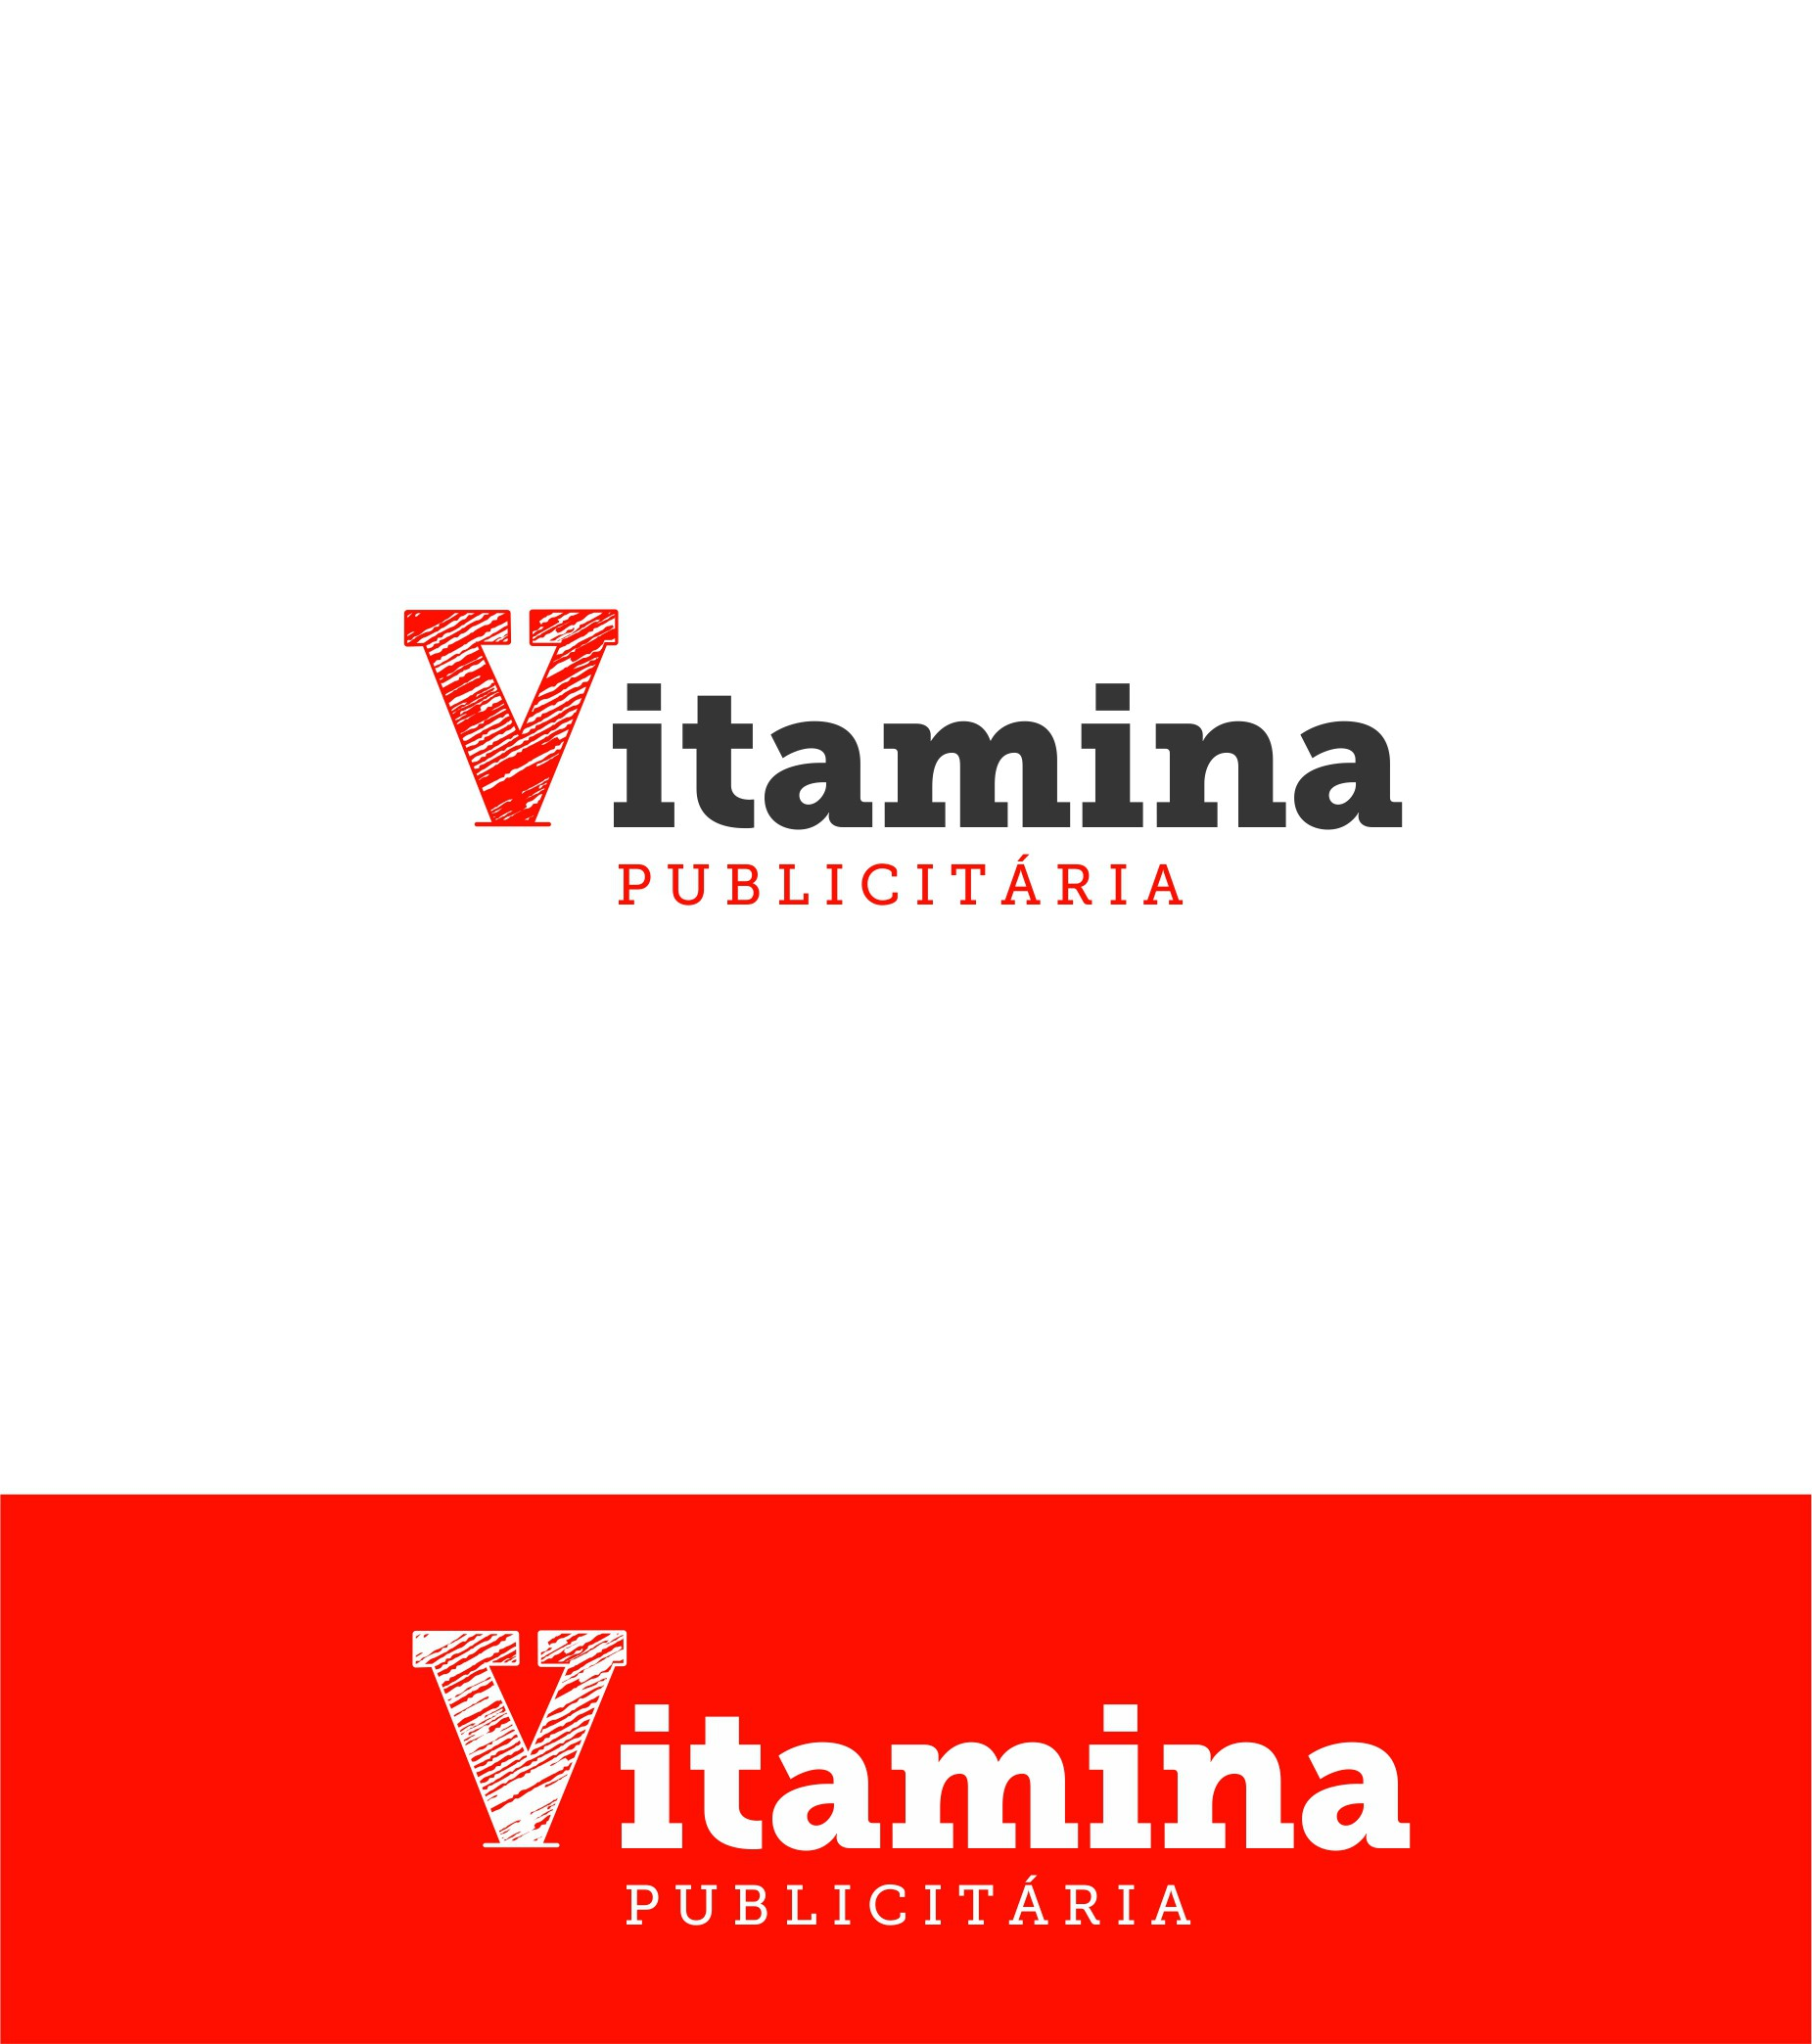 New logo for a famous blog in Brazil: Vitamina Publicitária